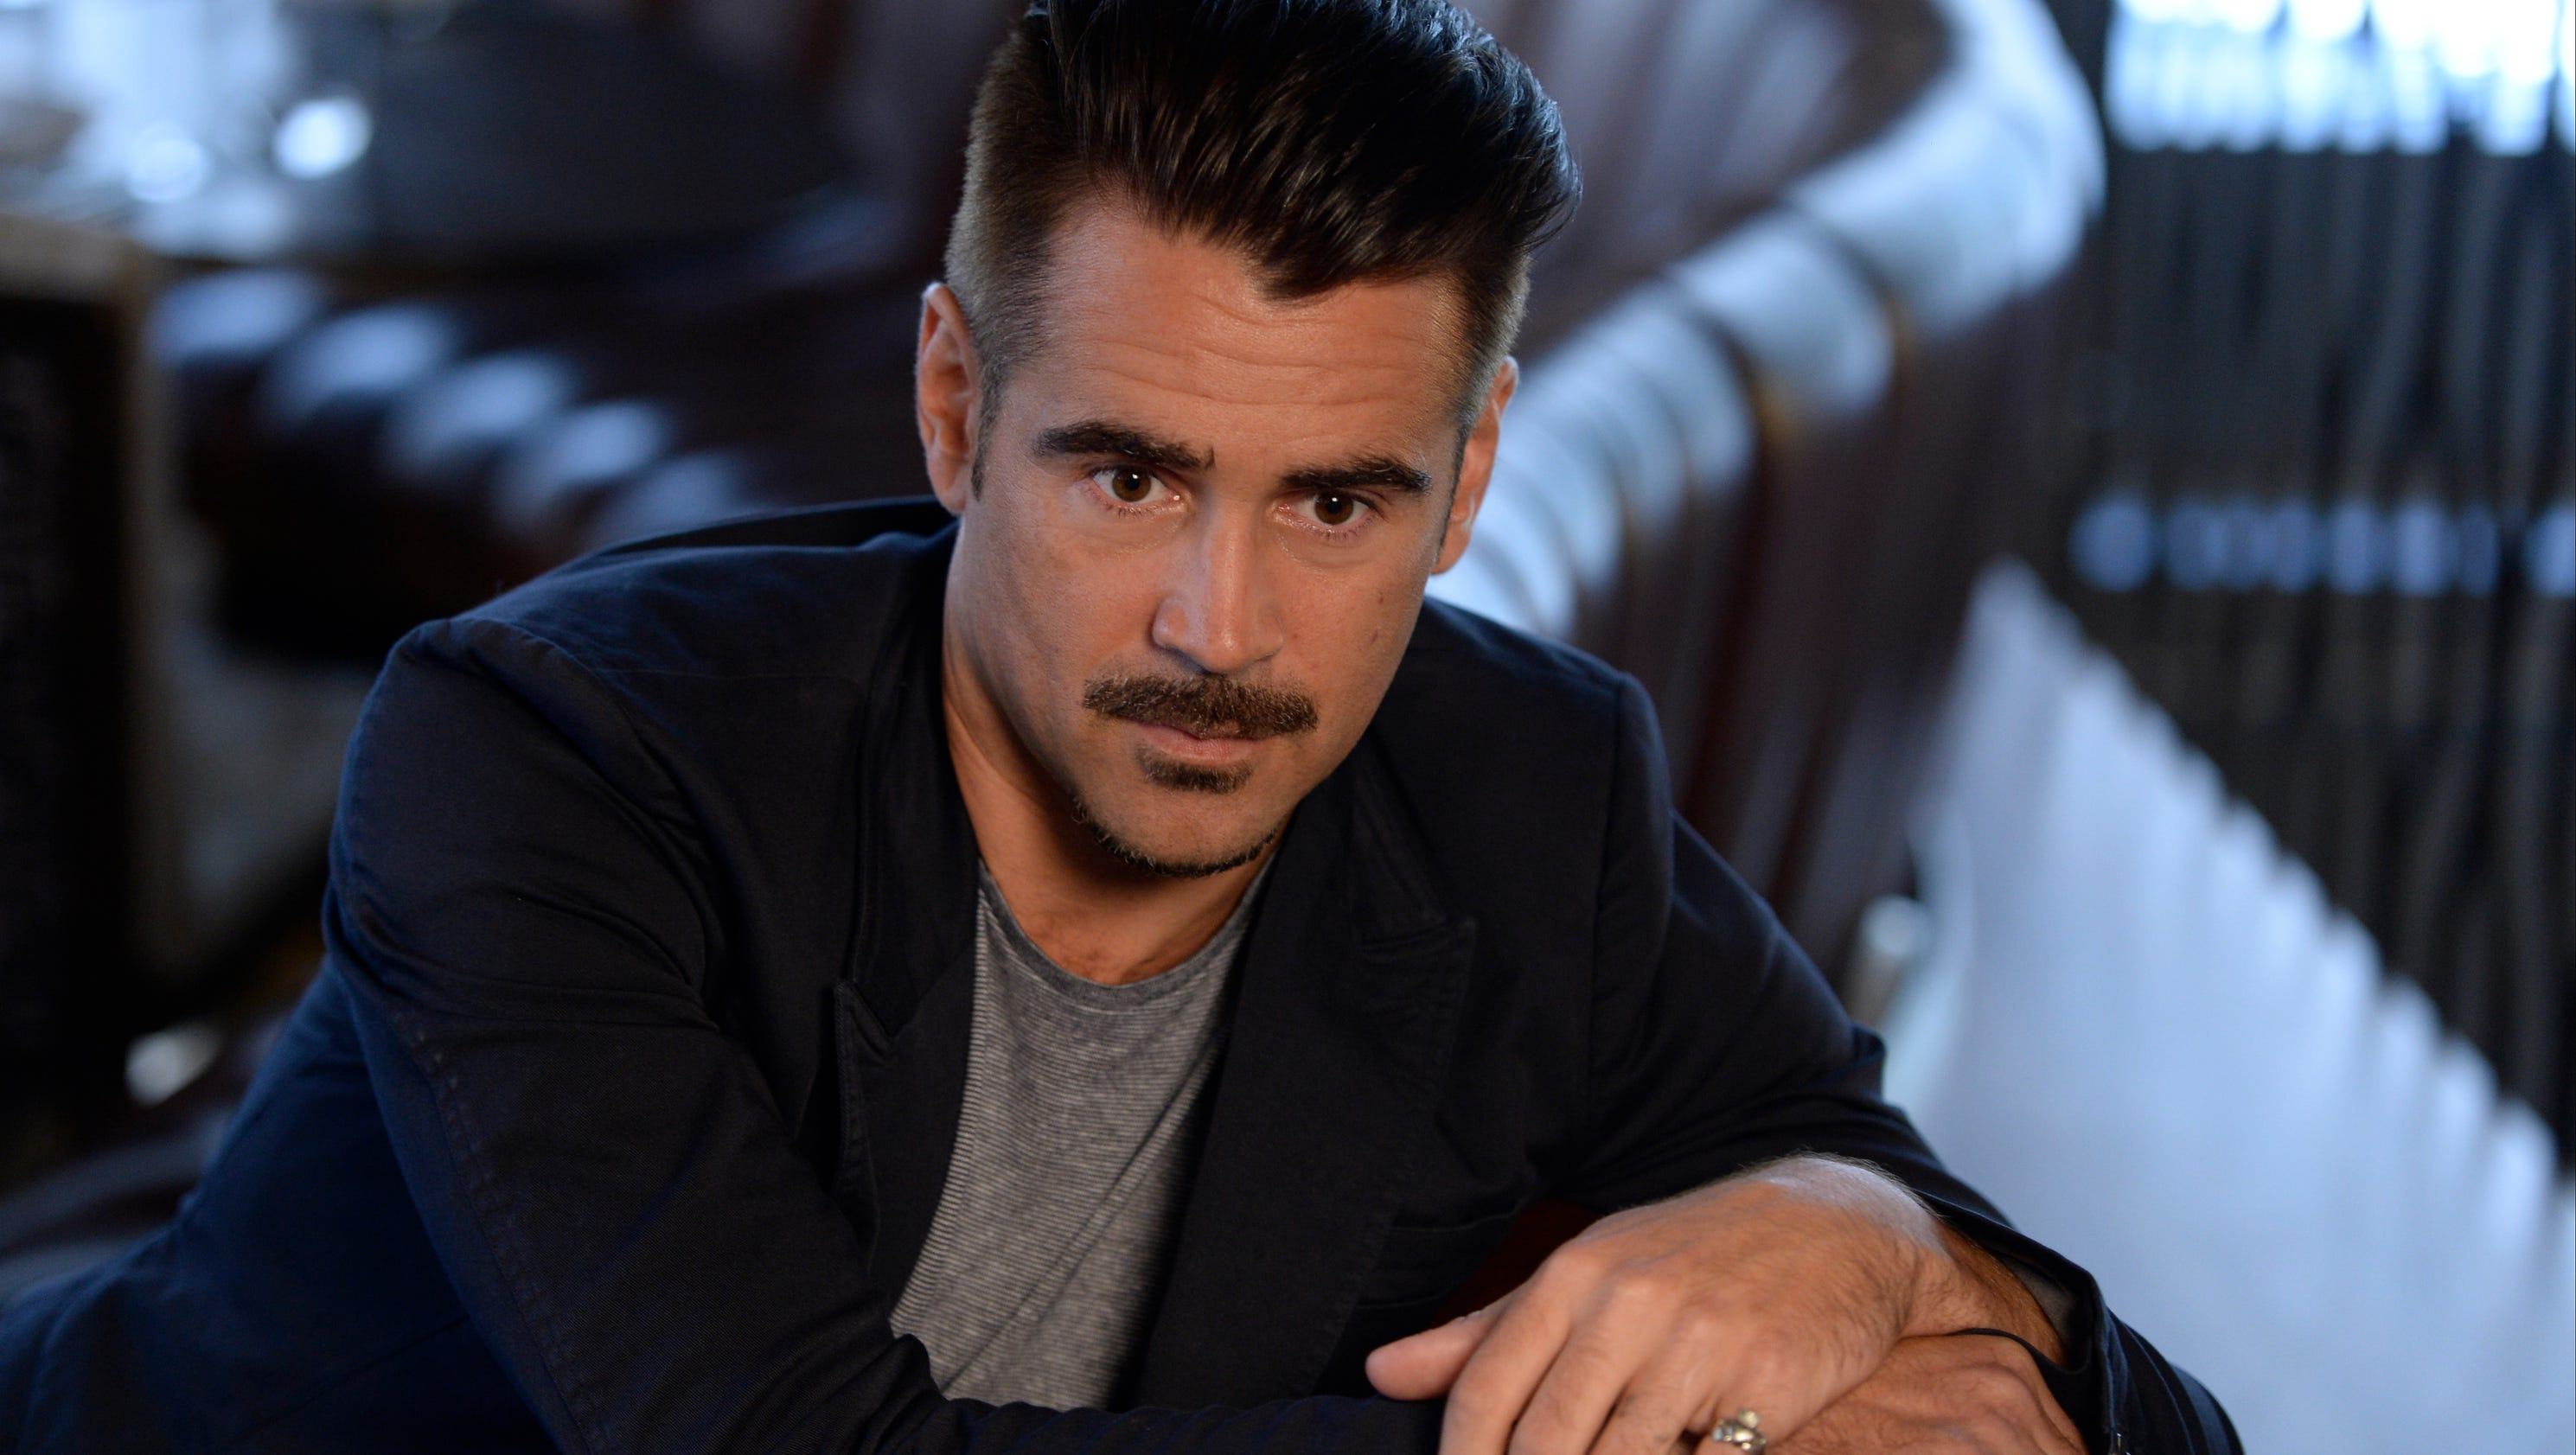 farrell mature singles Colin farrell, actor: the lobster colin farrell is one of ireland's best rising stars in hollywood and abroad today his film presence has been filled with memorable roles that range from.